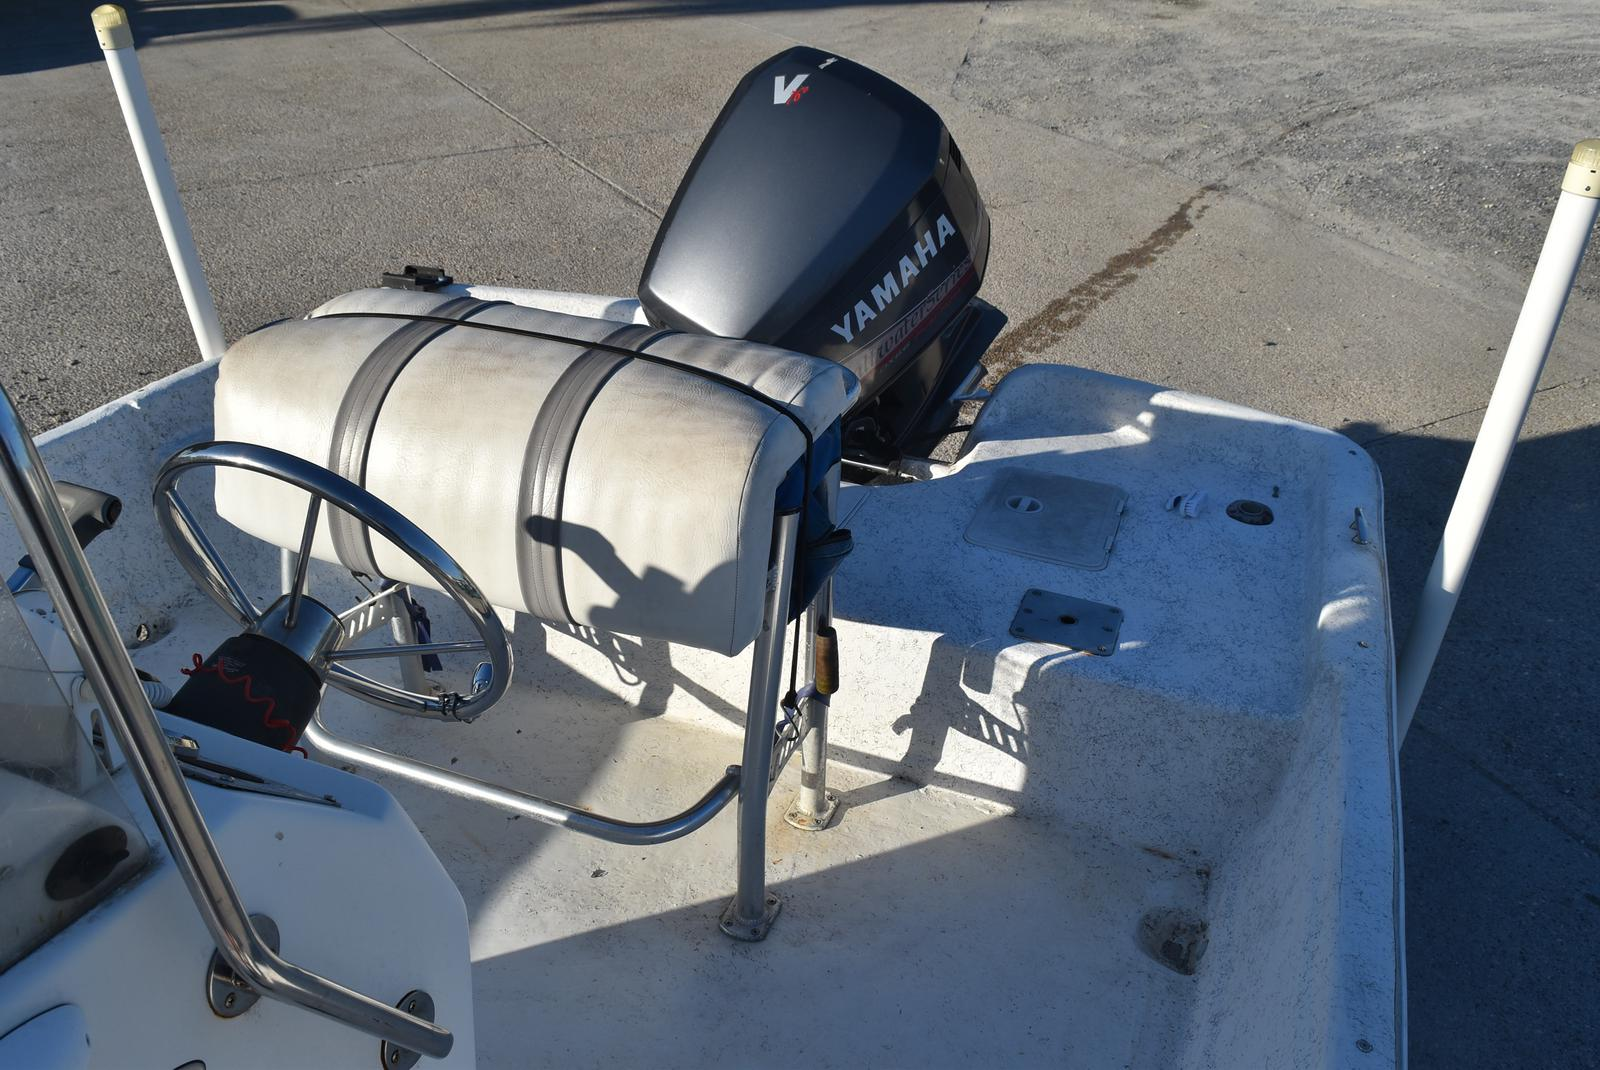 2005 Bay Stealth boat for sale, model of the boat is 2180 & Image # 6 of 10